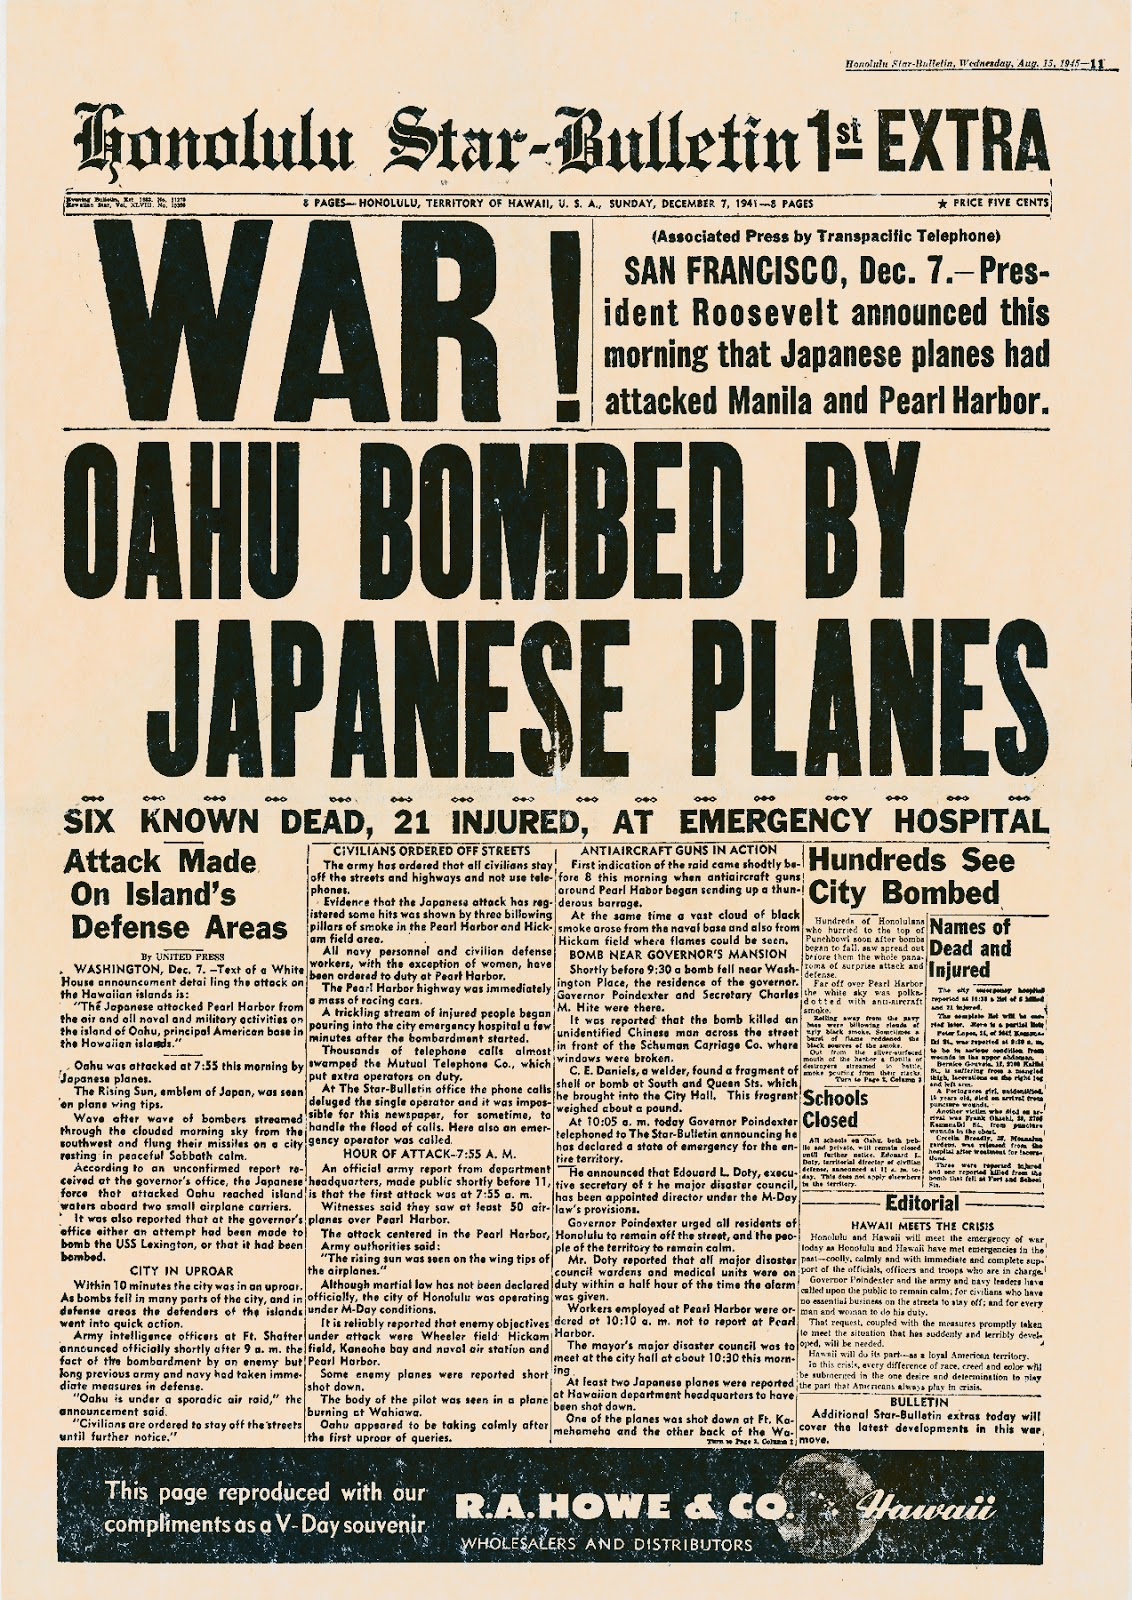 japanese invasion december 1941 february 1942 essay The malayan invasion began on the 10th of december 1941, on this day, on the east of malaya, the british royal navy battleship hms prince of wales and battle cruiser hms repulse were attacked by land-based bombers and torpedo bombers of the imperial japanese navy.